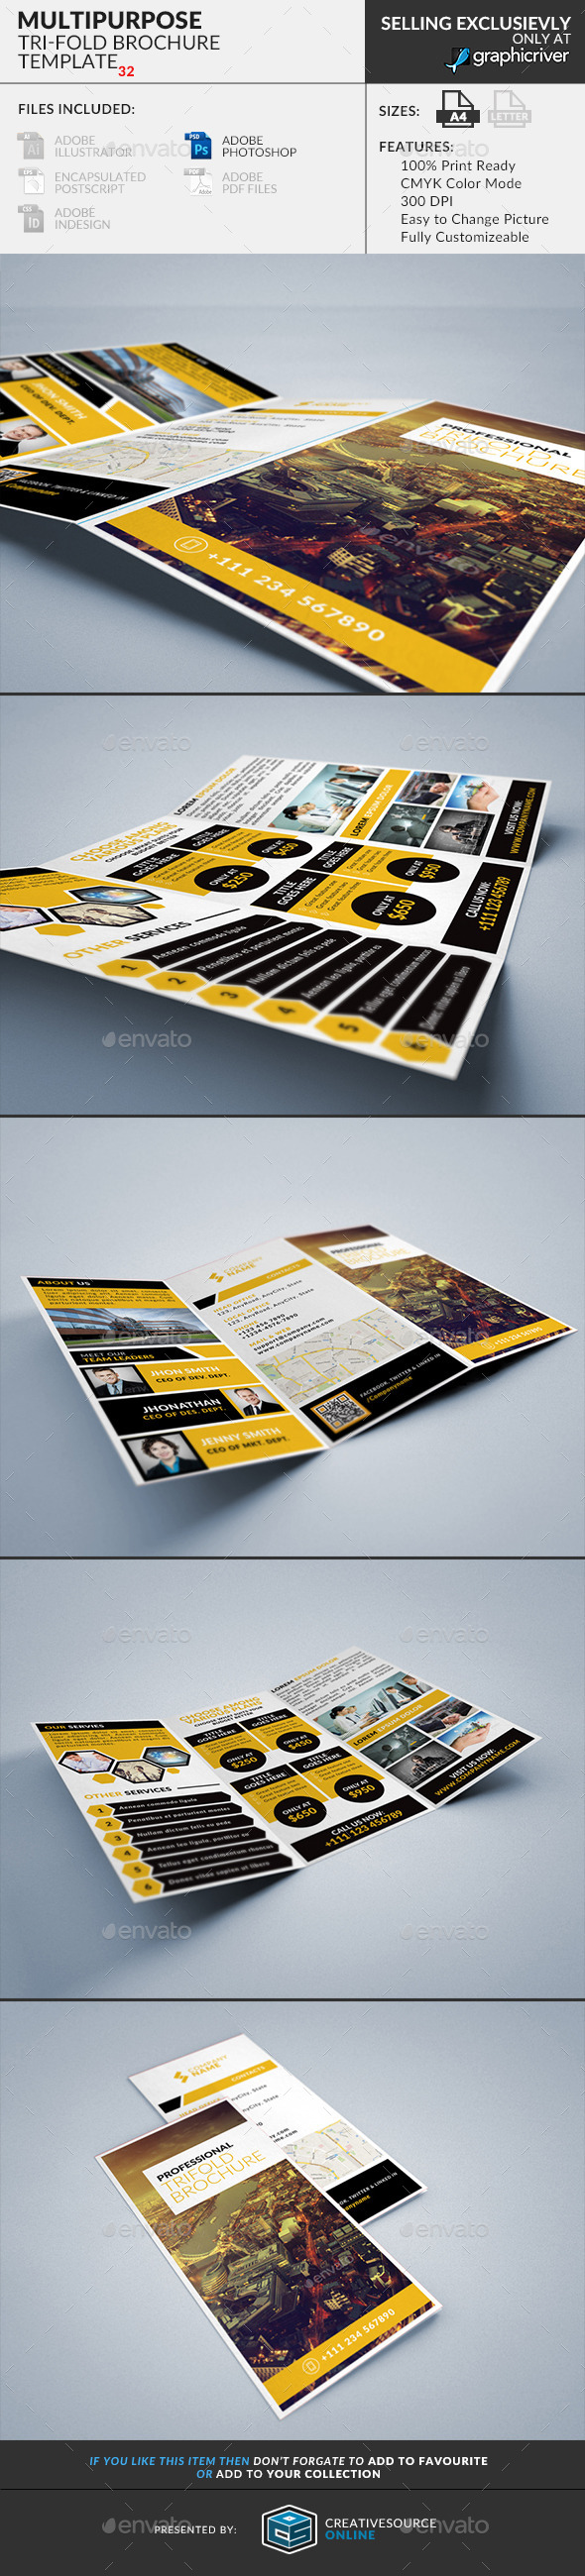 Trifold Brochure 32 Multipurpose